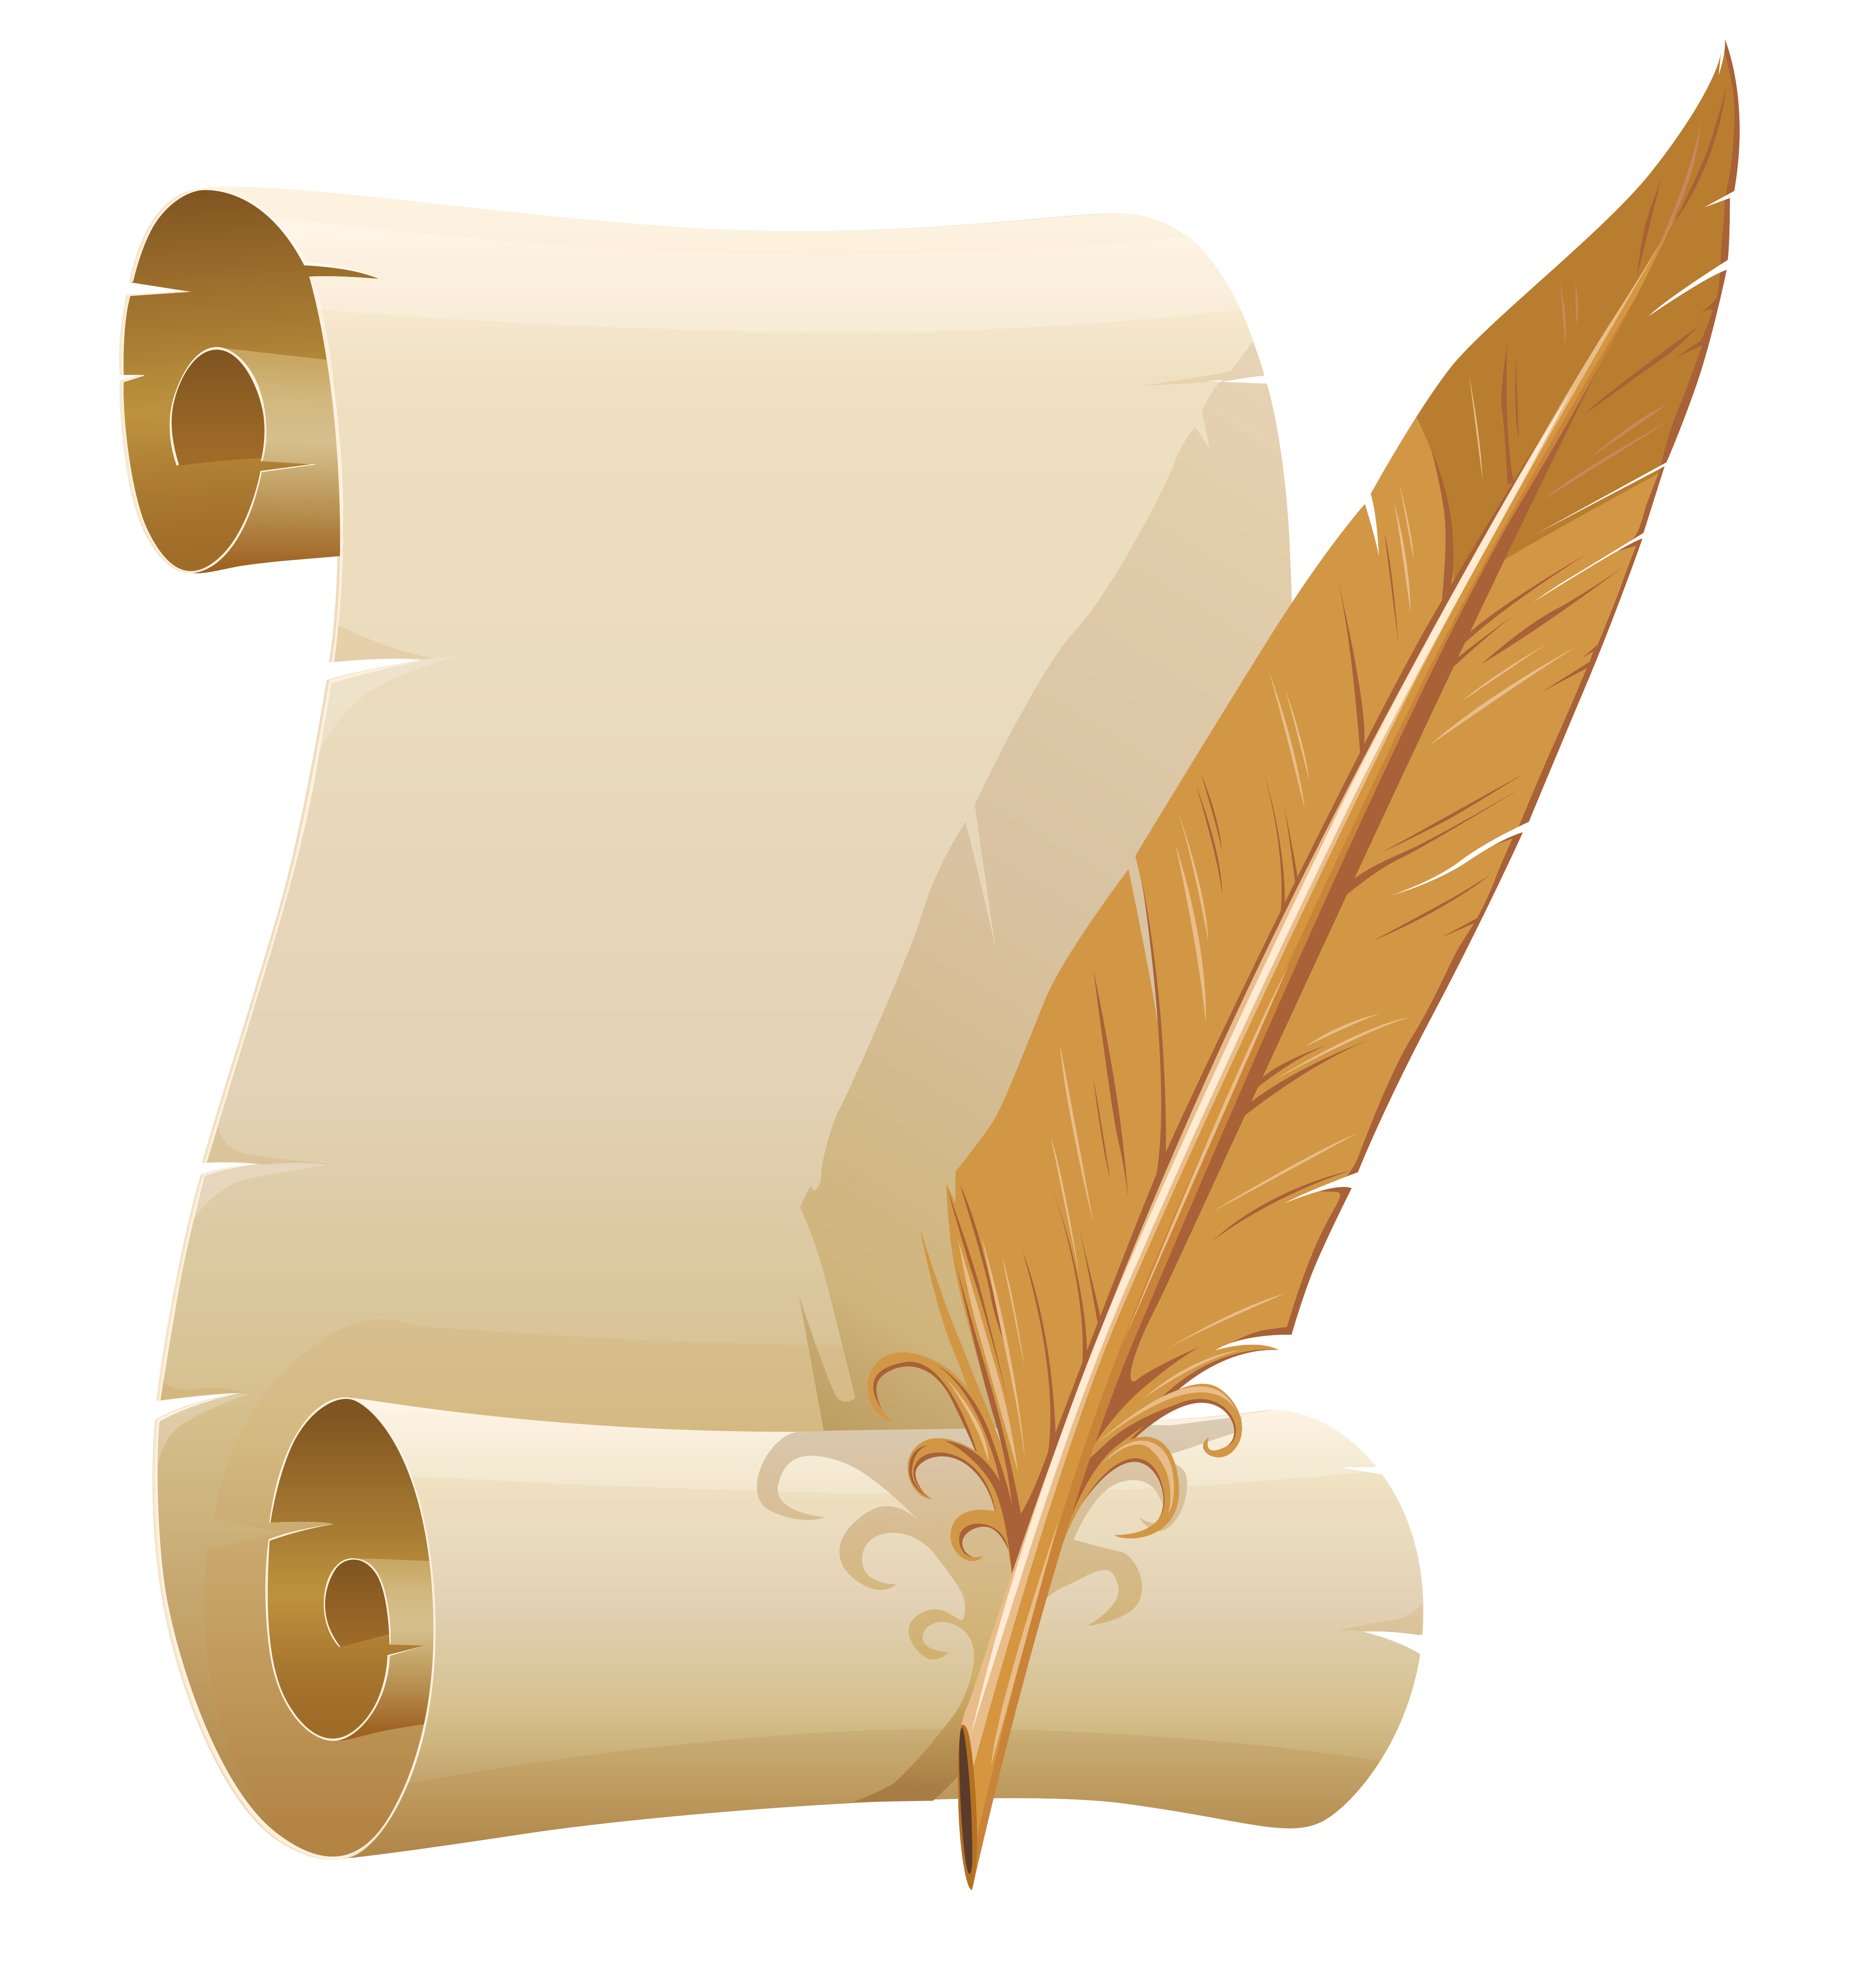 Scrolled Paper and Quill Pen PNG Clipart Image.